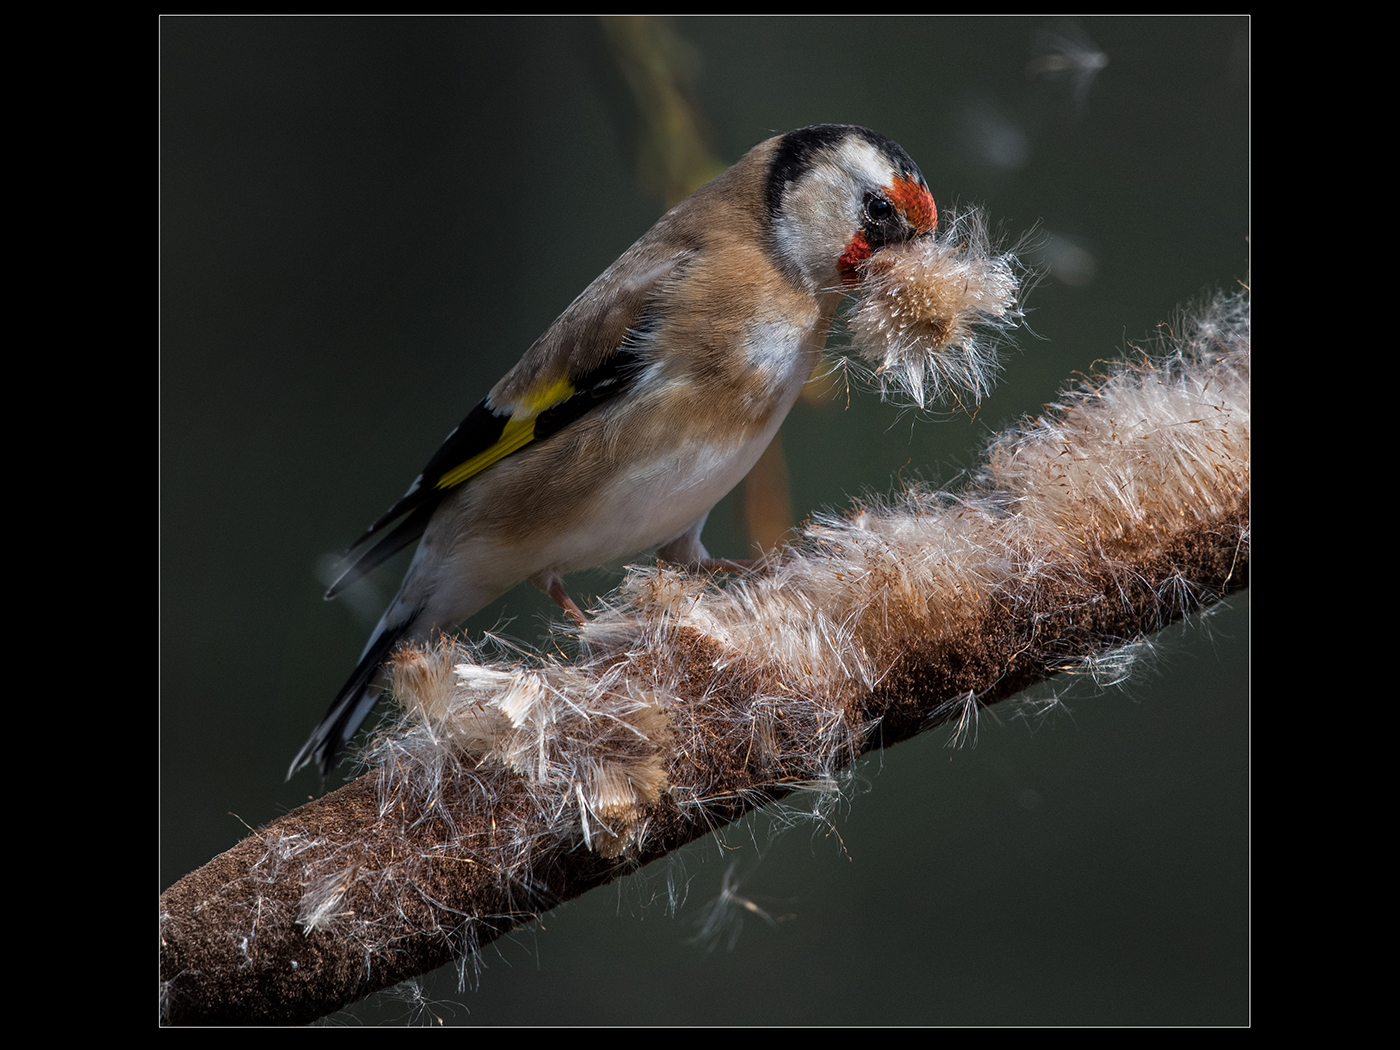 Gold finch collecting nesting material of a bullrush